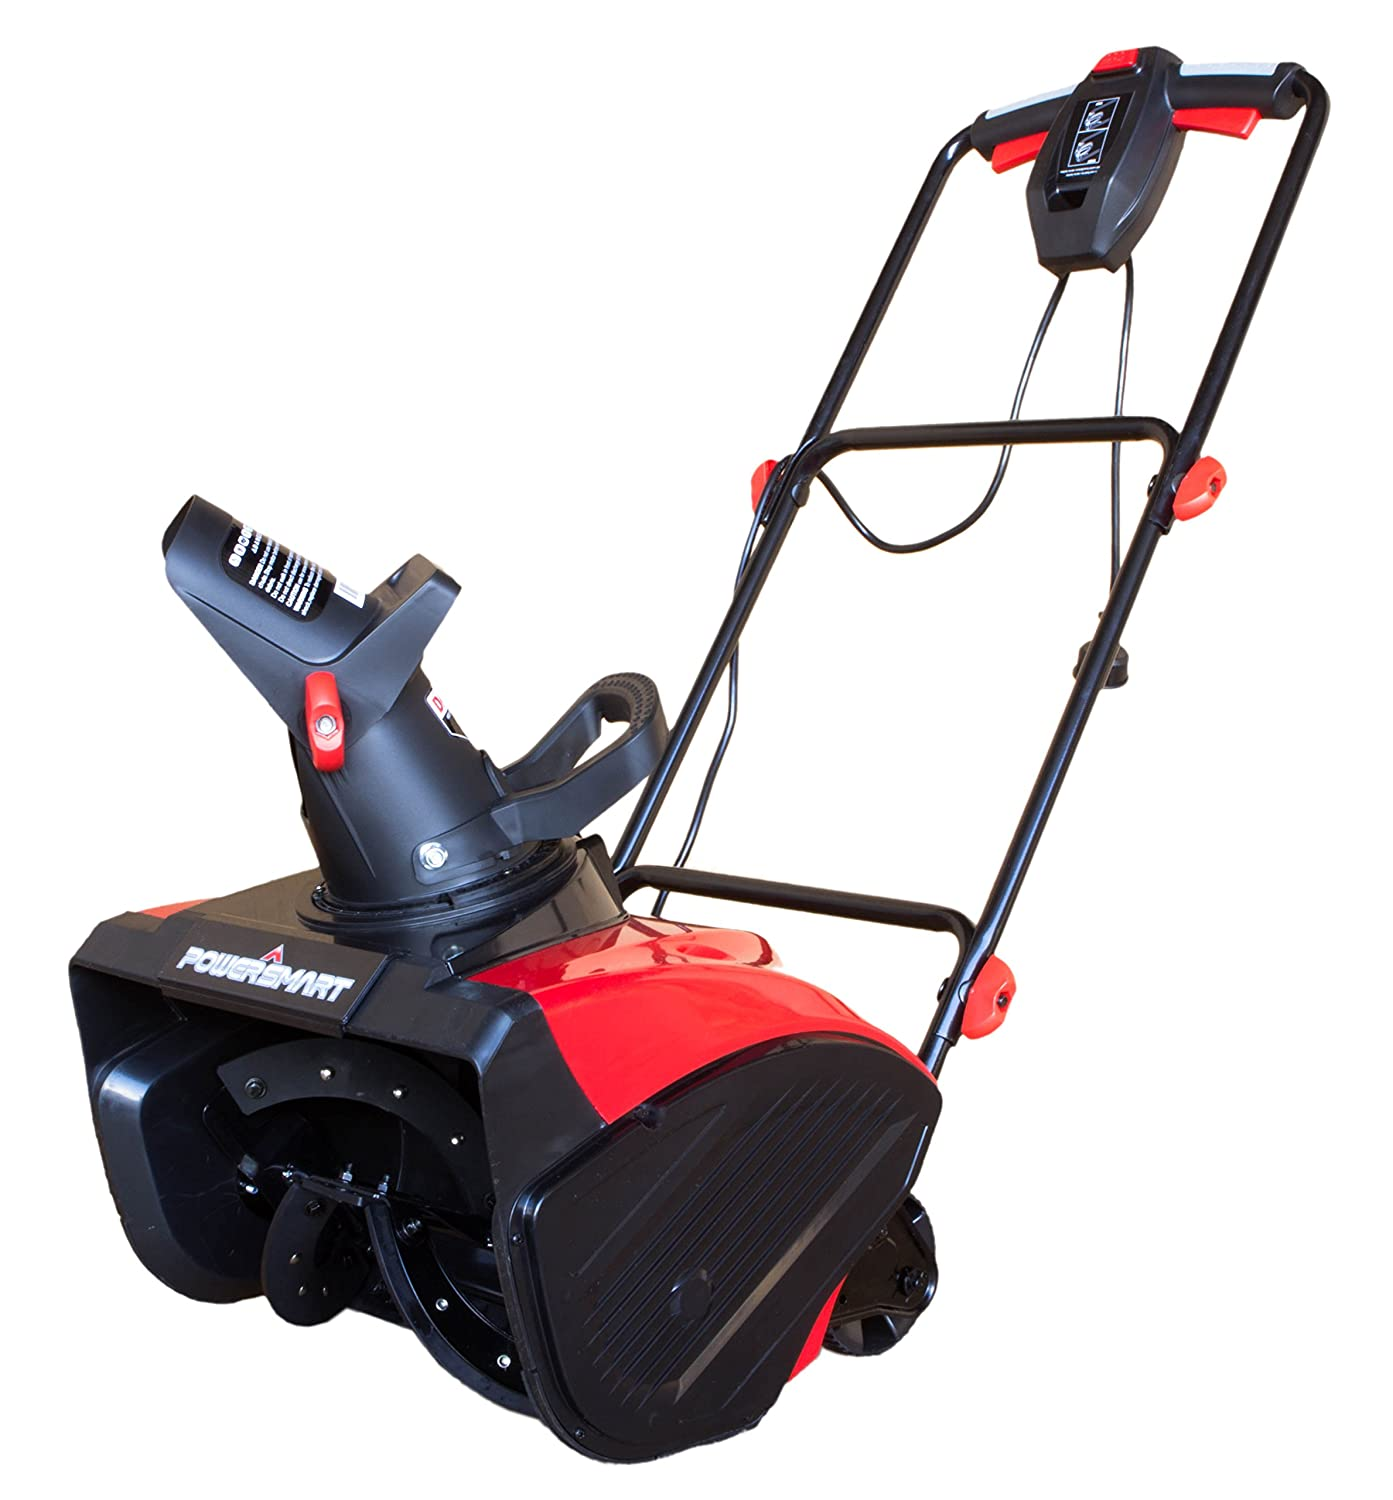 PowerSmart DB5017 Snow Blower